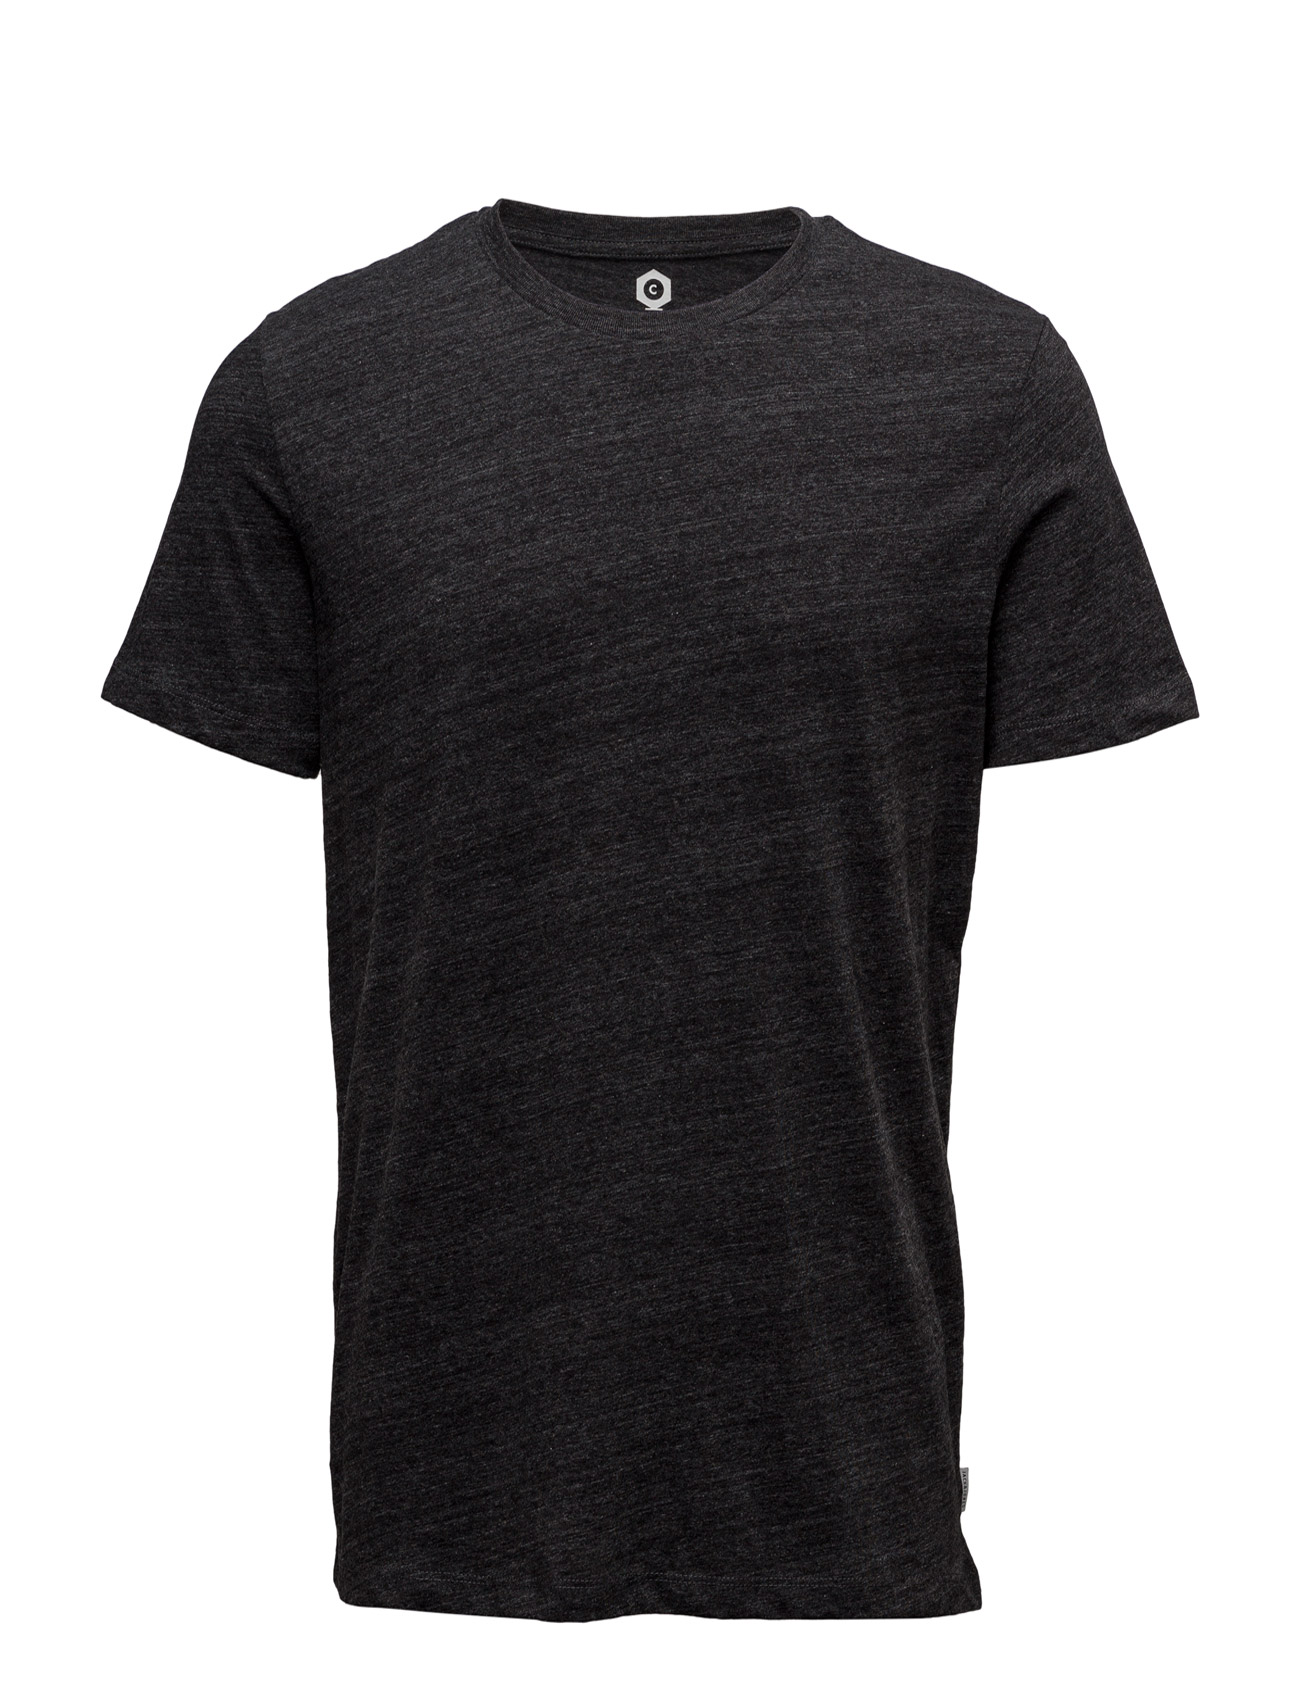 Jcotable Tee Ss Melange Or Pocket Noos Jack & Jones Core Kortærmede til Herrer i Sort